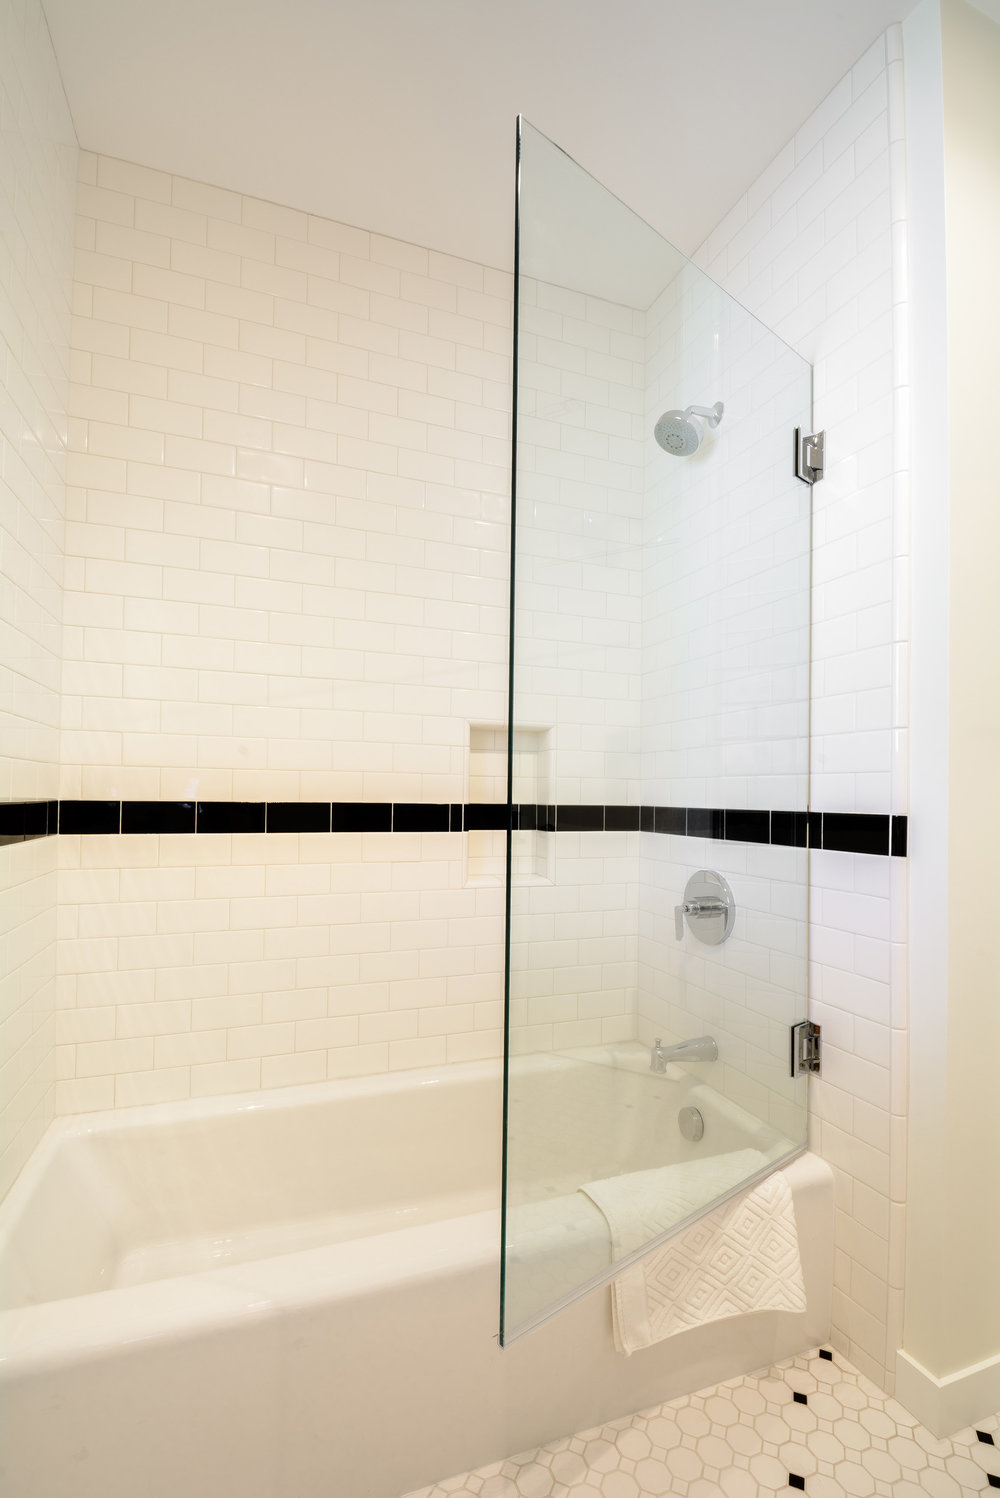 Swing out glass door for tub enclosure